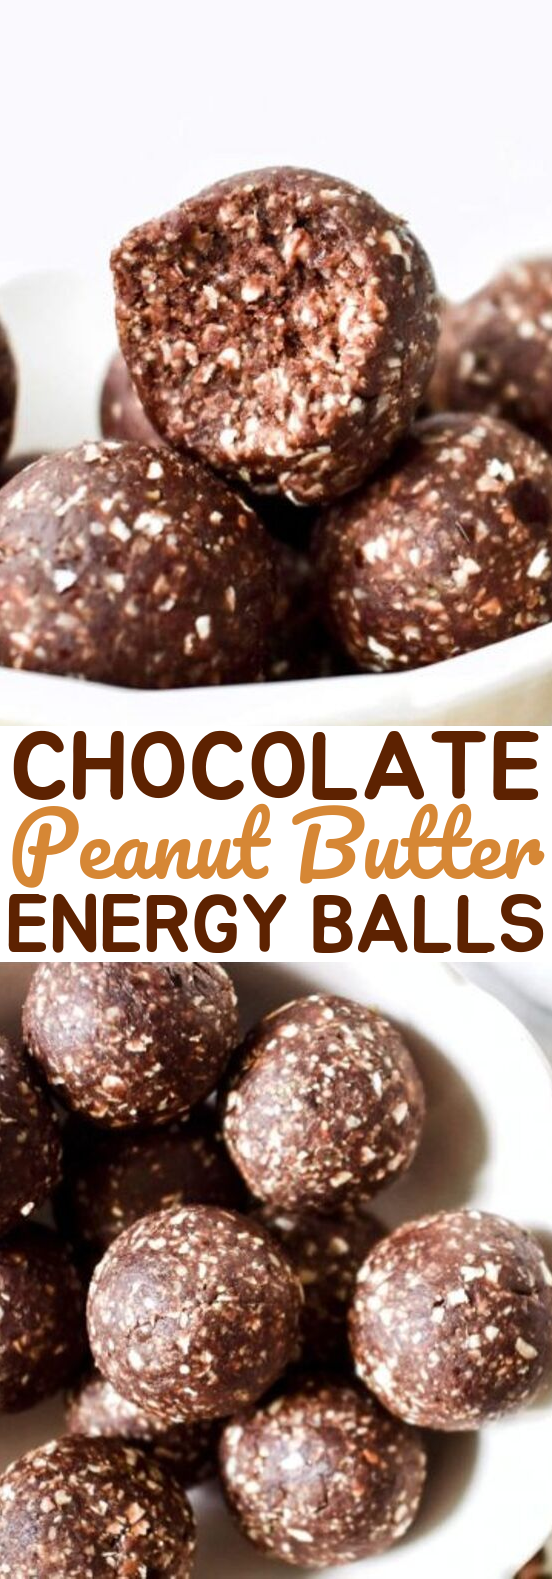 No-Bake Chocolate Peanut Butter Energy Balls #healthy #snacks